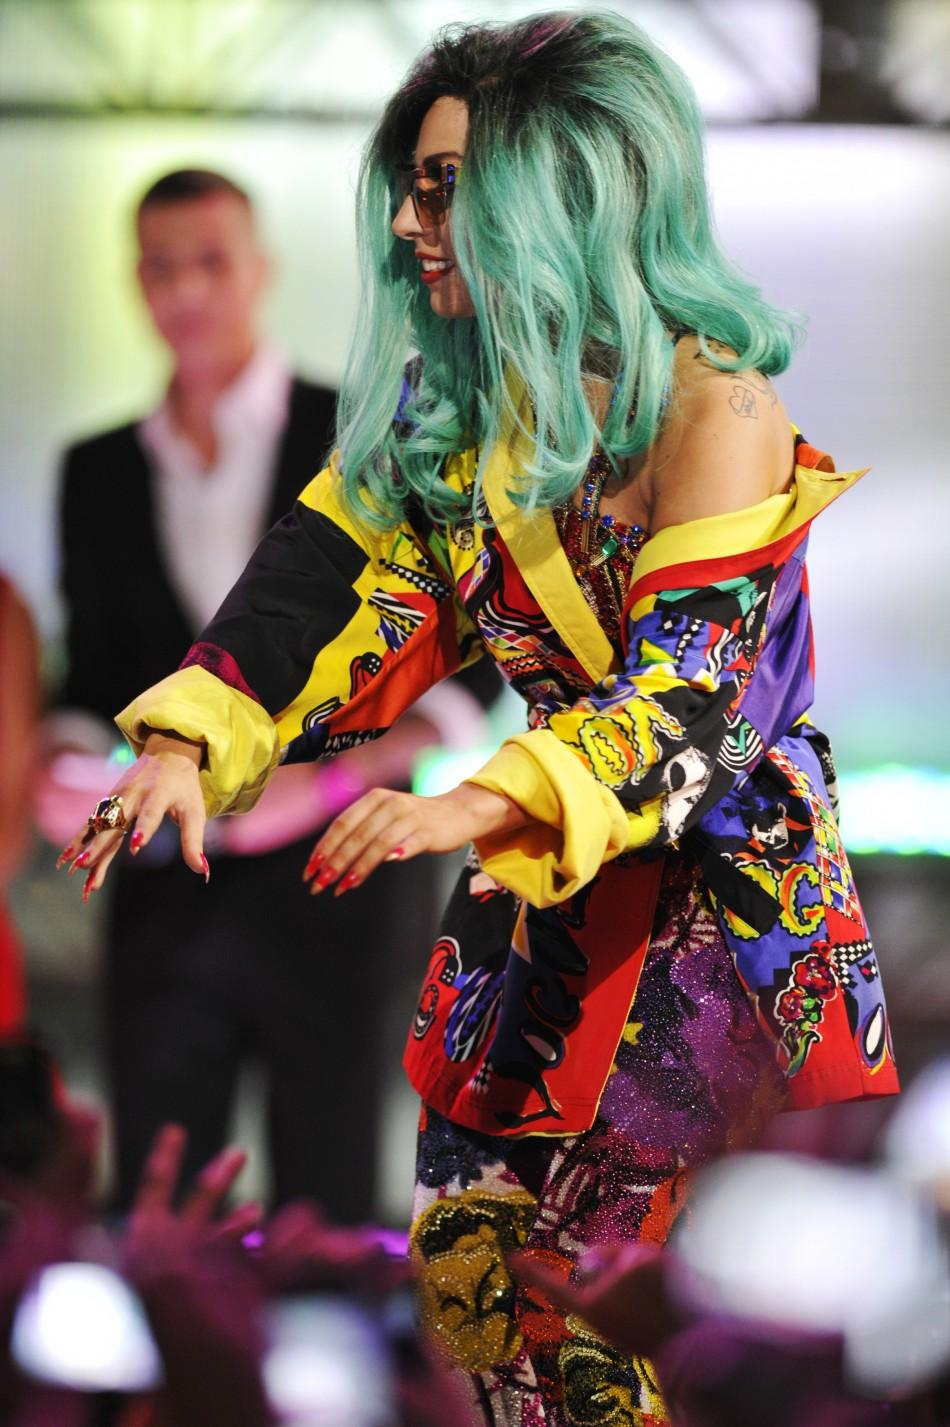 Lady Gaga at the MuchMusic Awards in Toronton, 2011